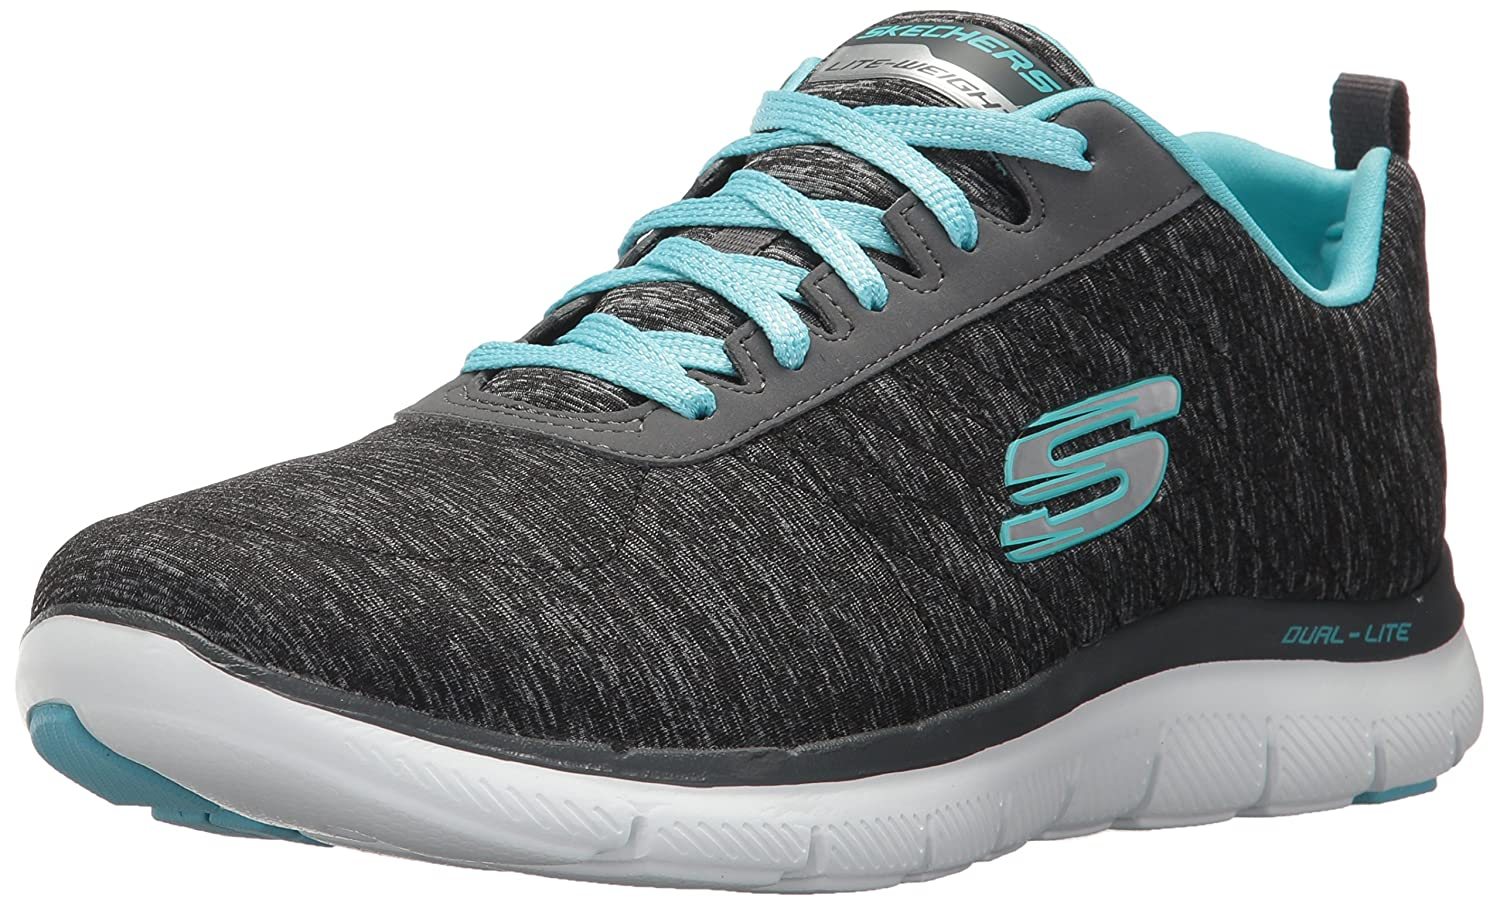 Skechers Women's Flex Appeal 2.0 Sneaker B071JXBNQP 8 W US|Black Light Blue